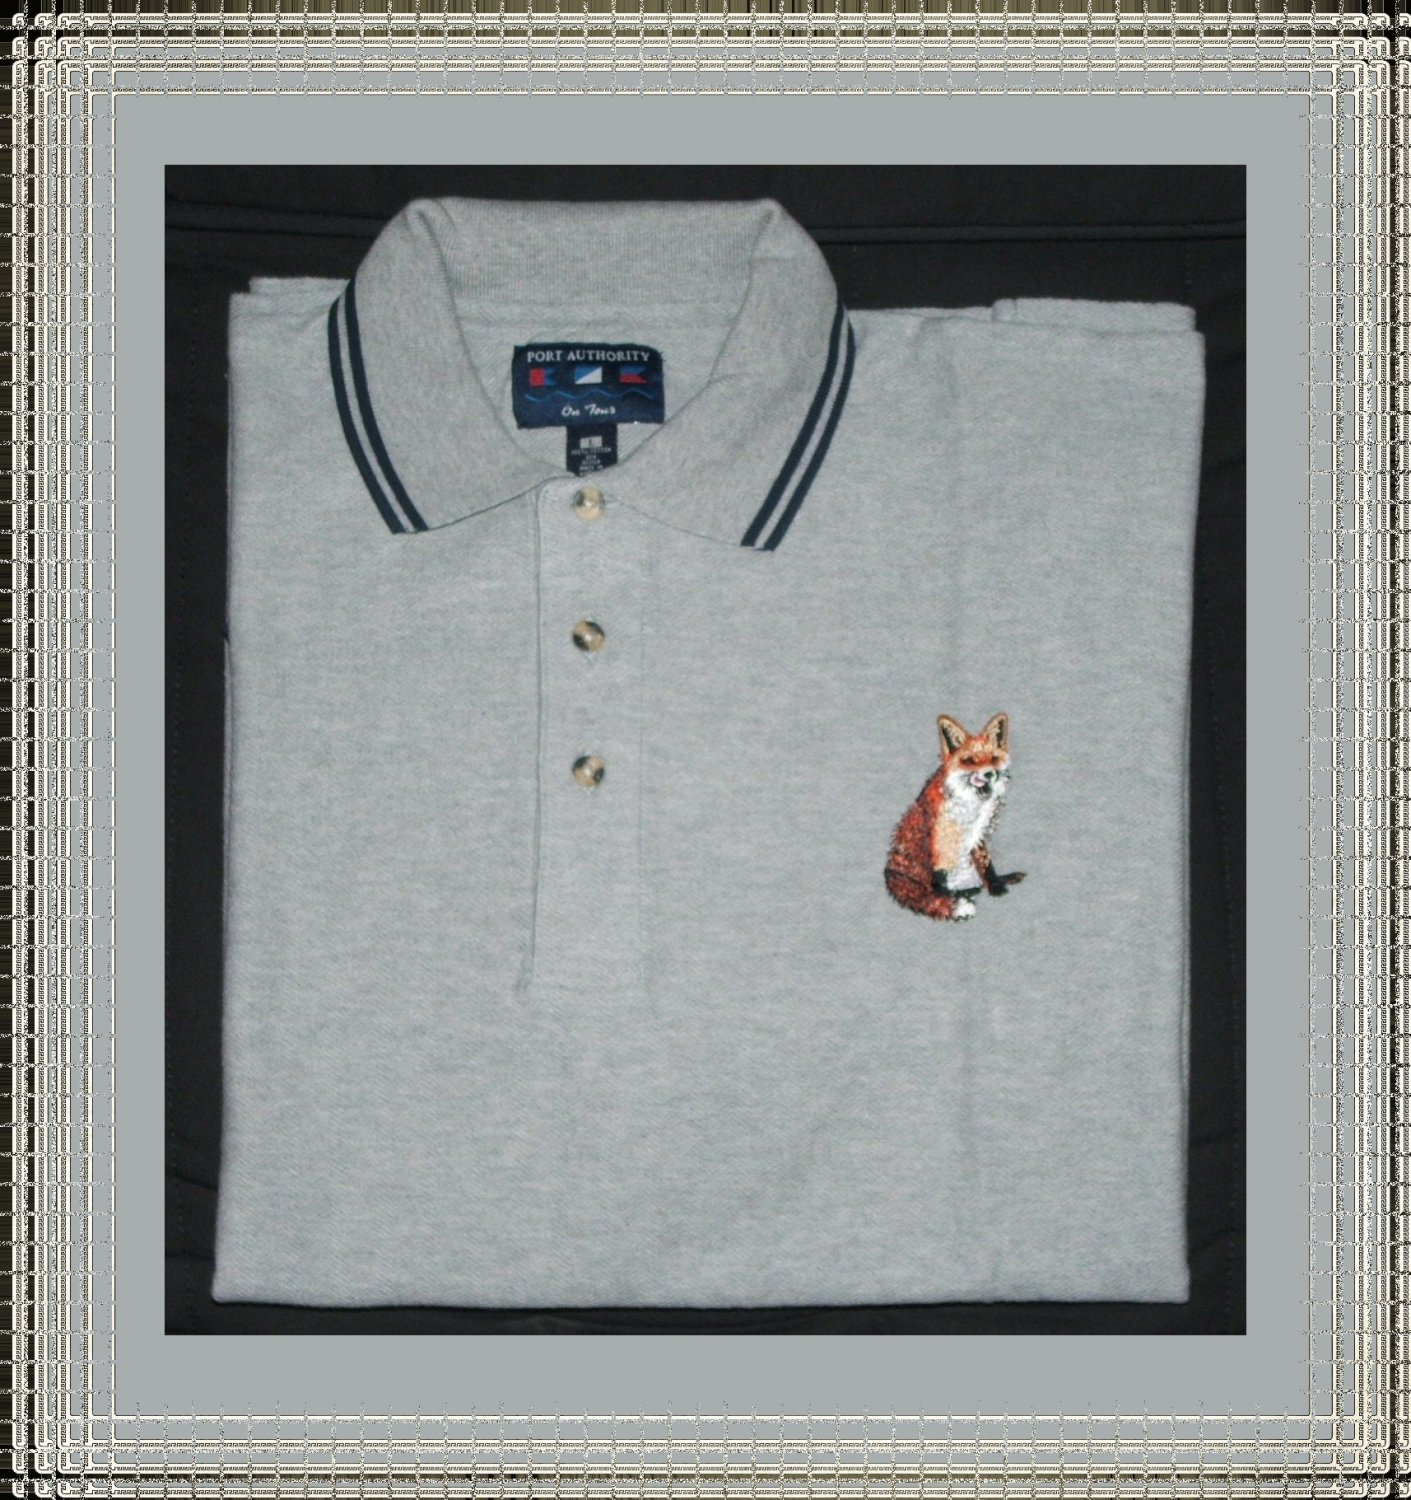 Men Cotton Polo Shirt Short Sleeve with Red Fox Embroidery Large